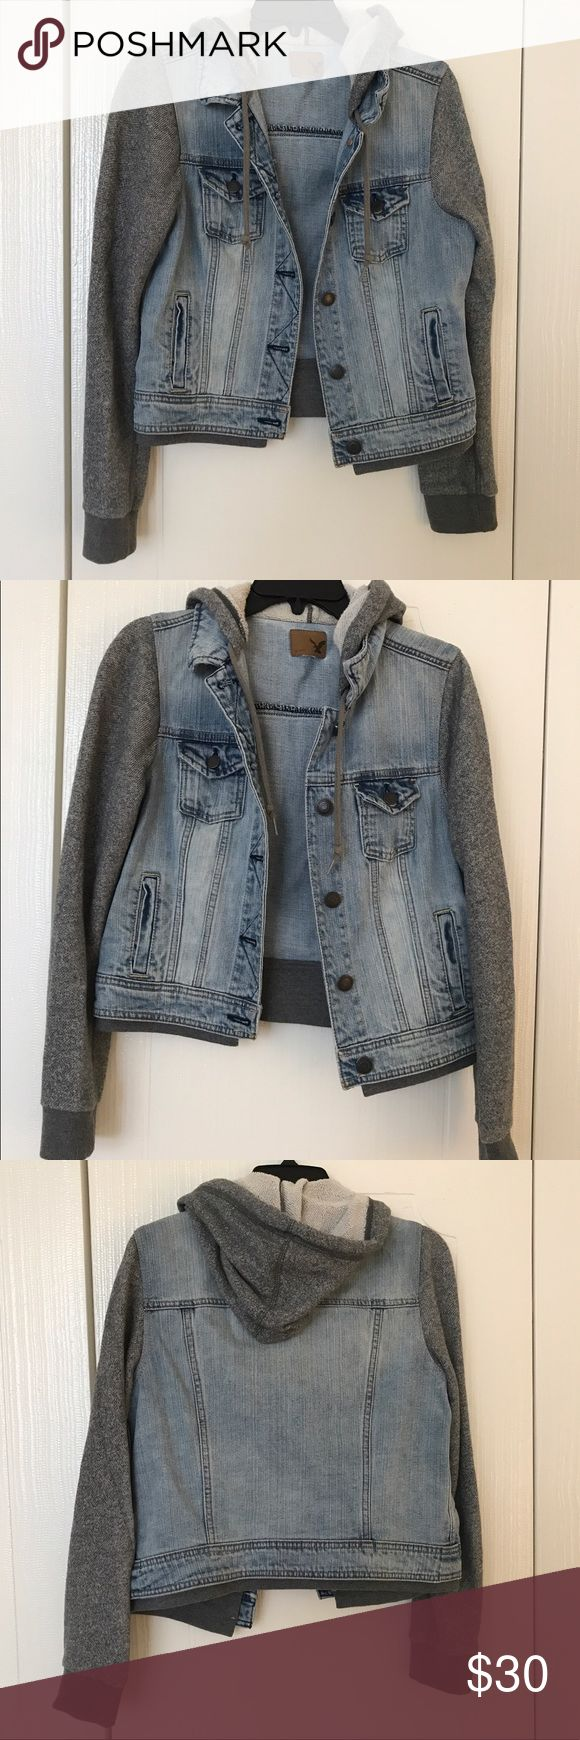 American Eagle Jacket In very good condition. American Eagle Outfitters Jackets & Coats Jean Jackets